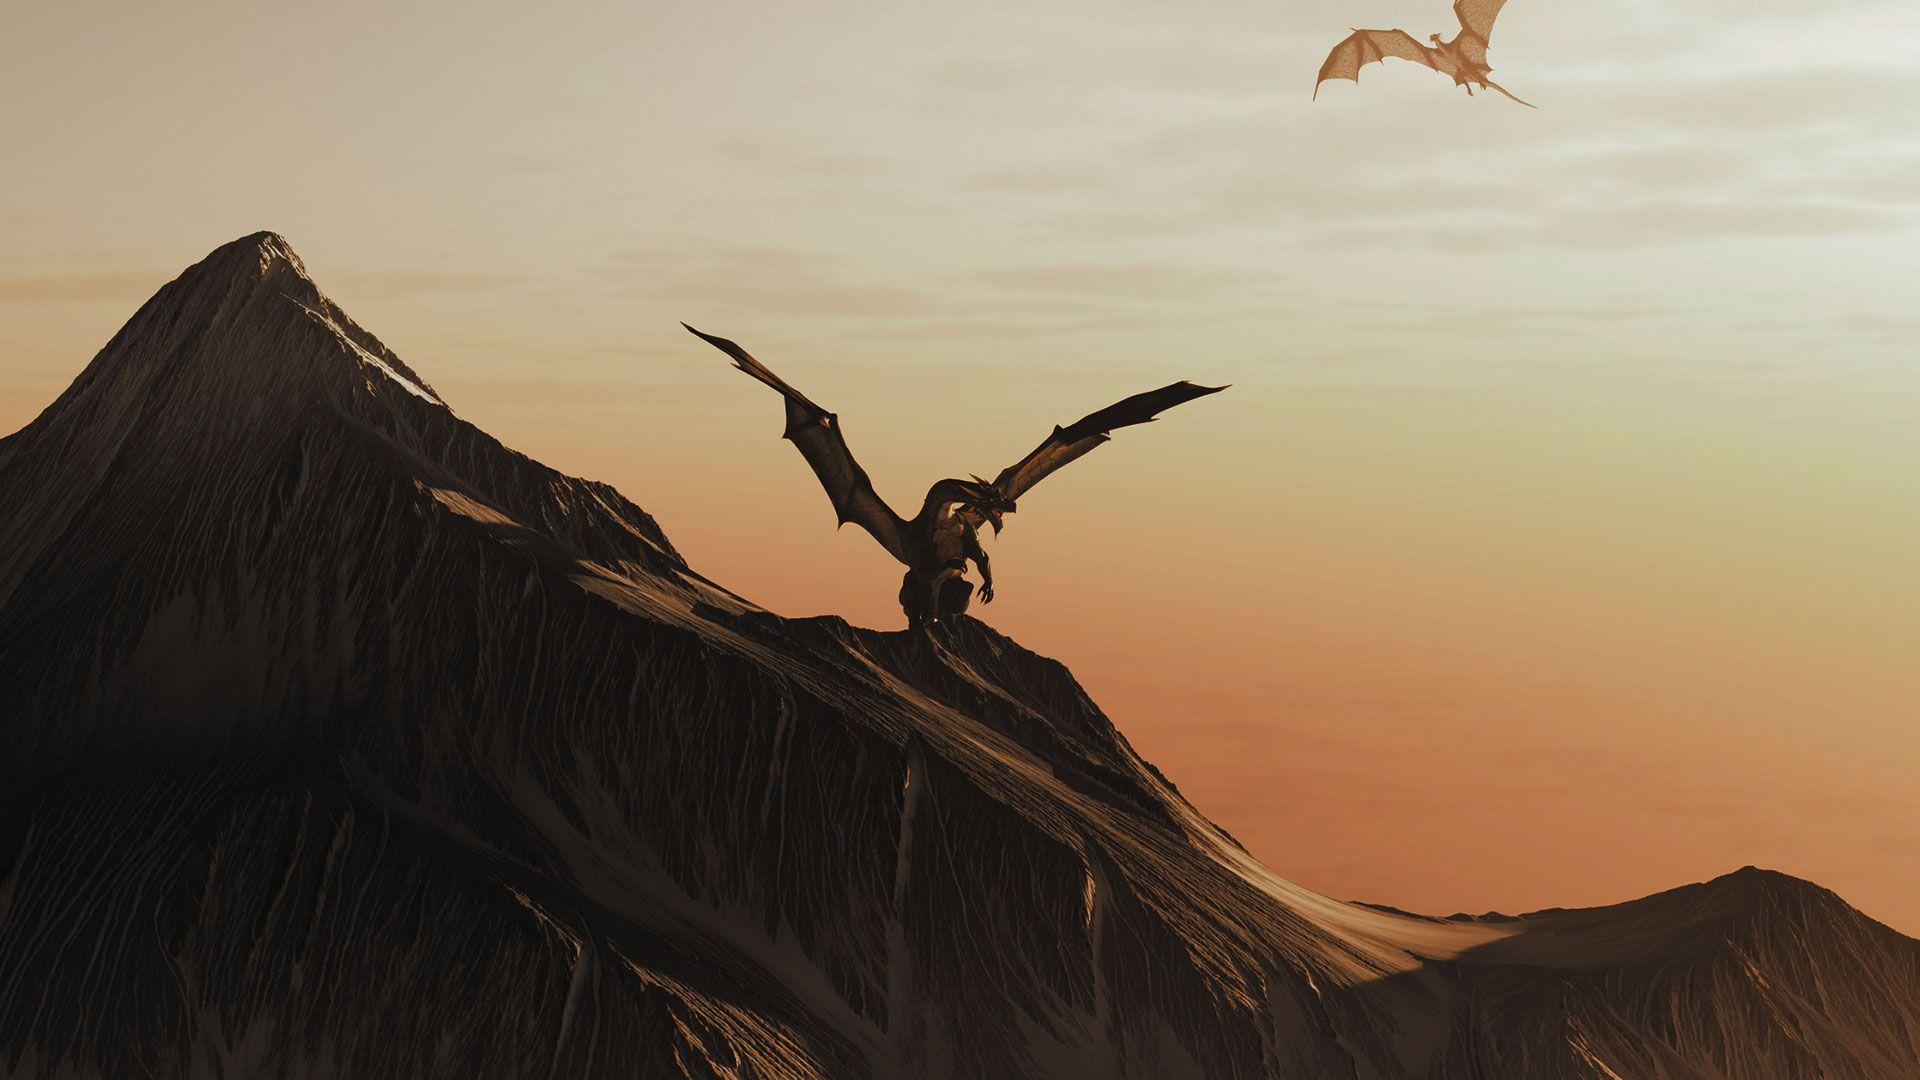 Dragonic Game Gameplay Screenshot Dragons Mountains